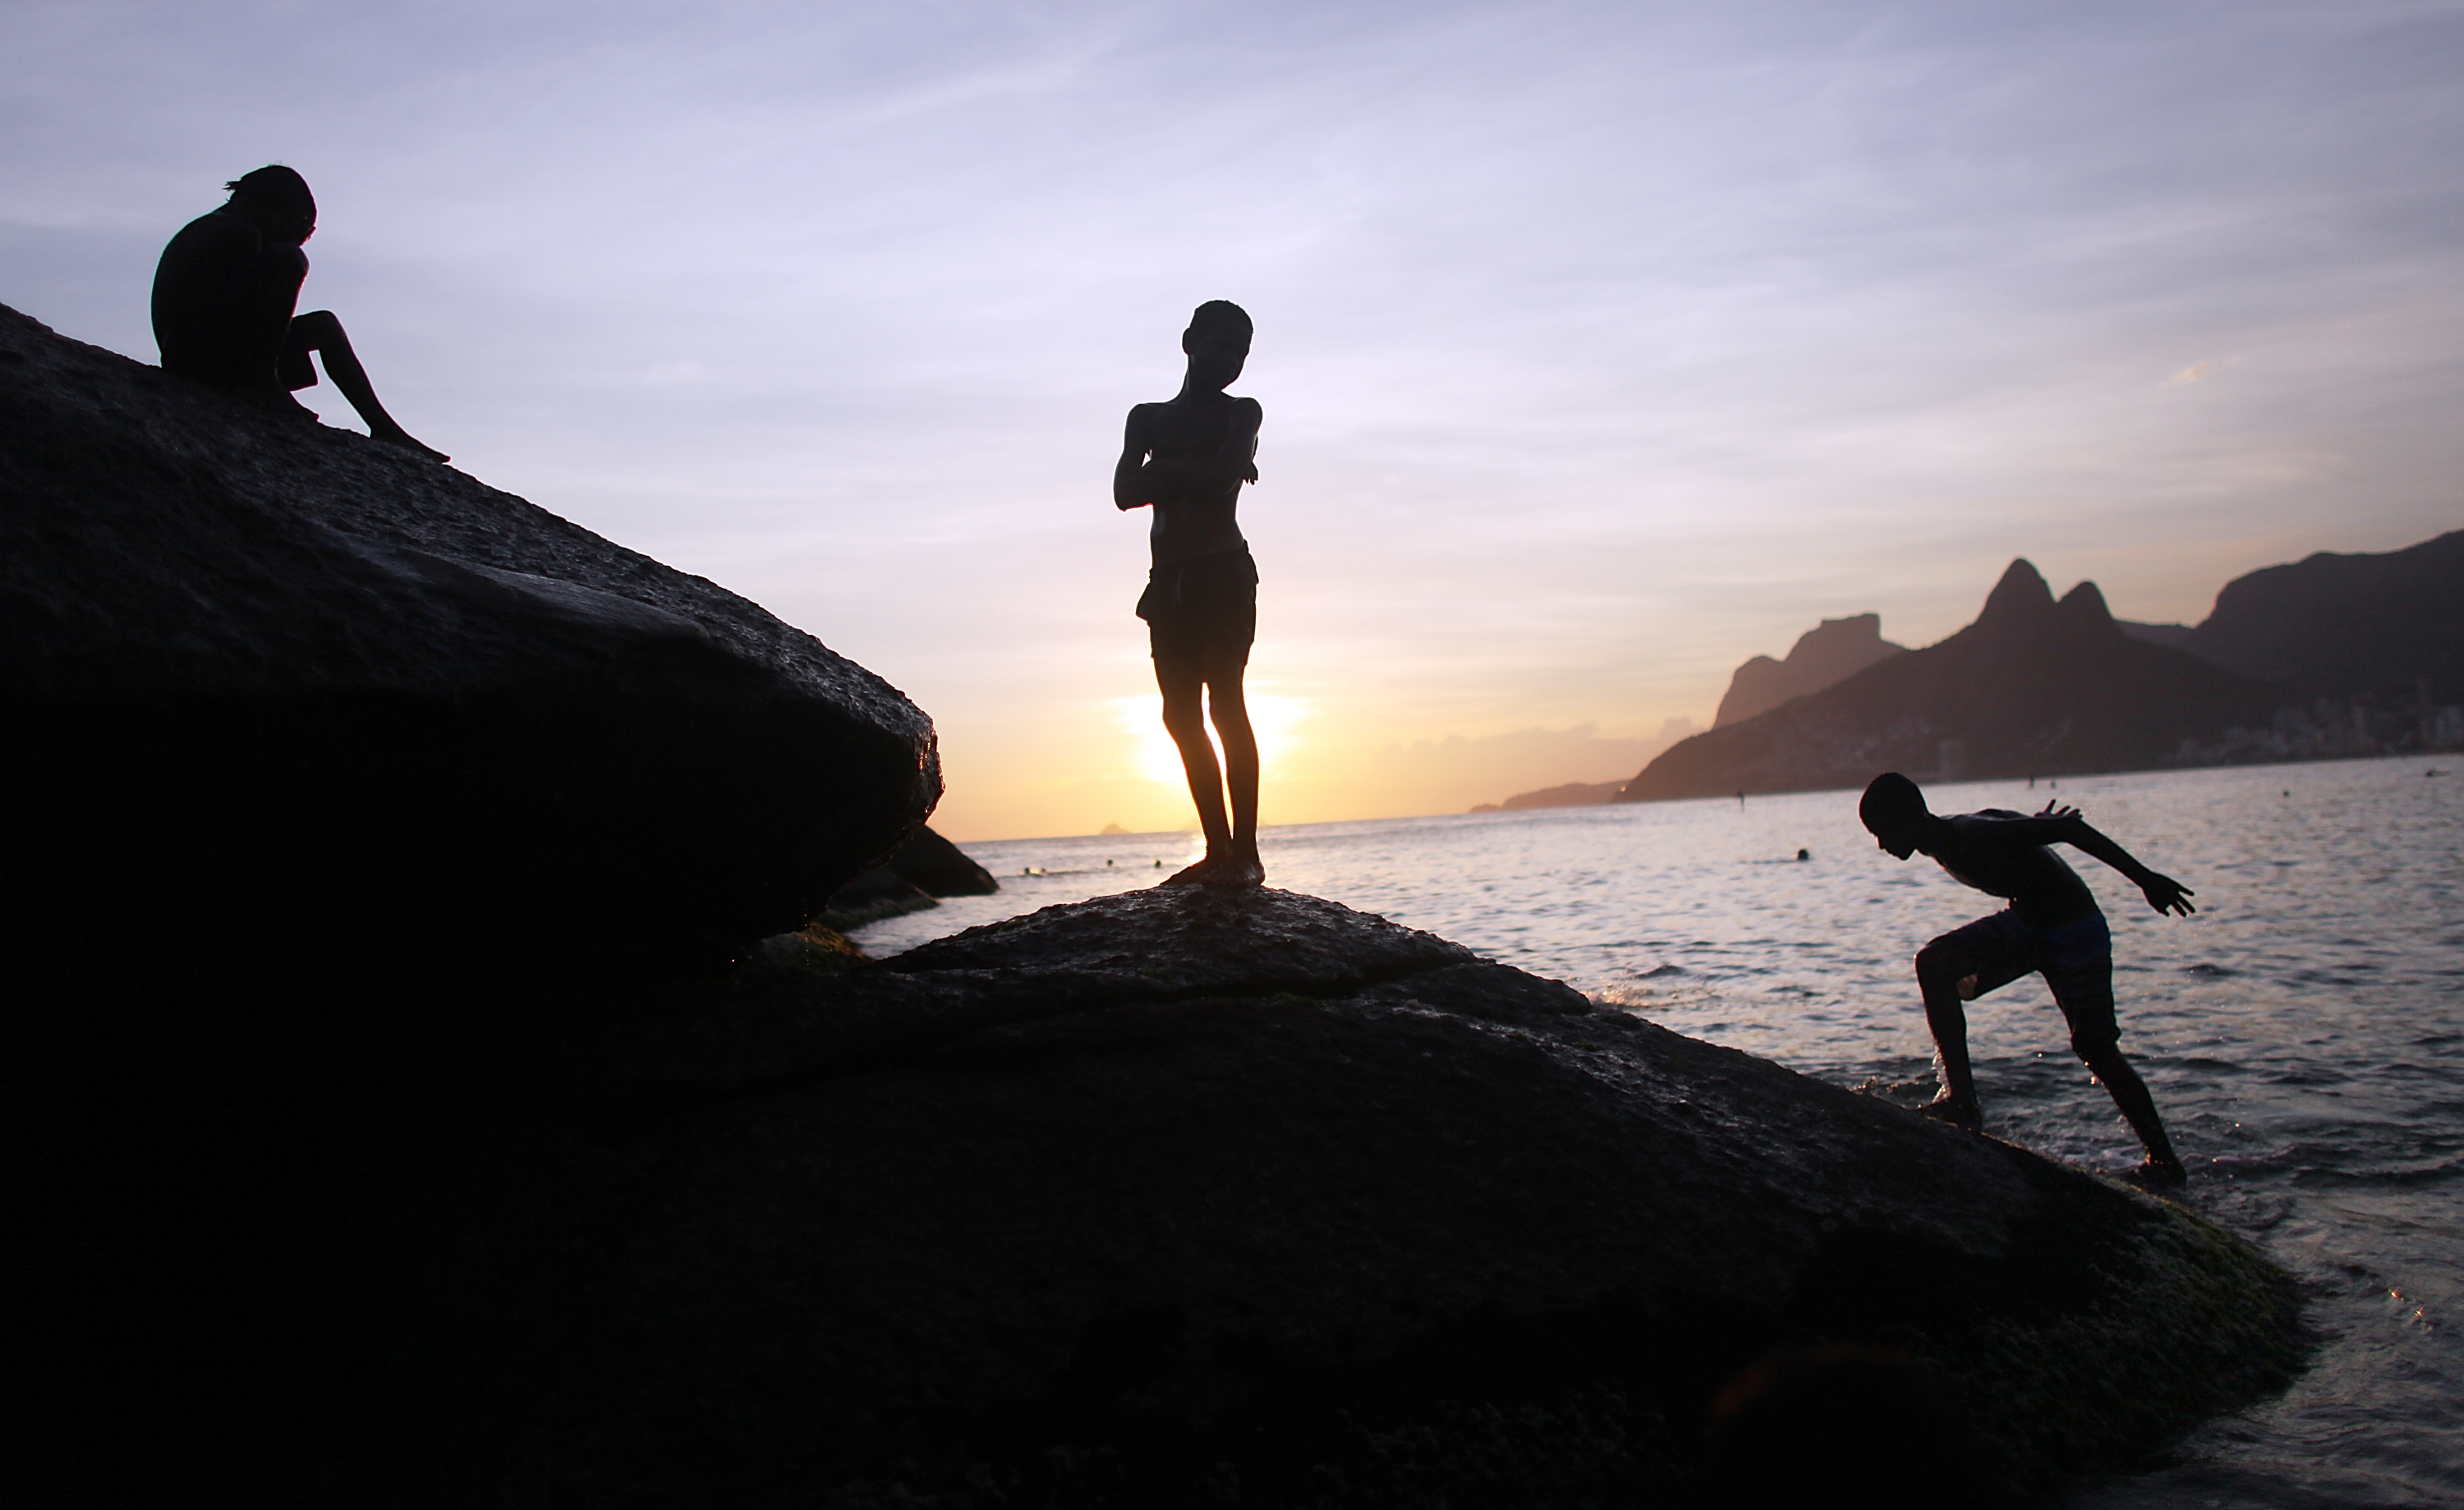 Kids play on the rocks at Arpoador at sunset during a summer heat wave in the city on January 3, 2014 in Rio de Janeiro.